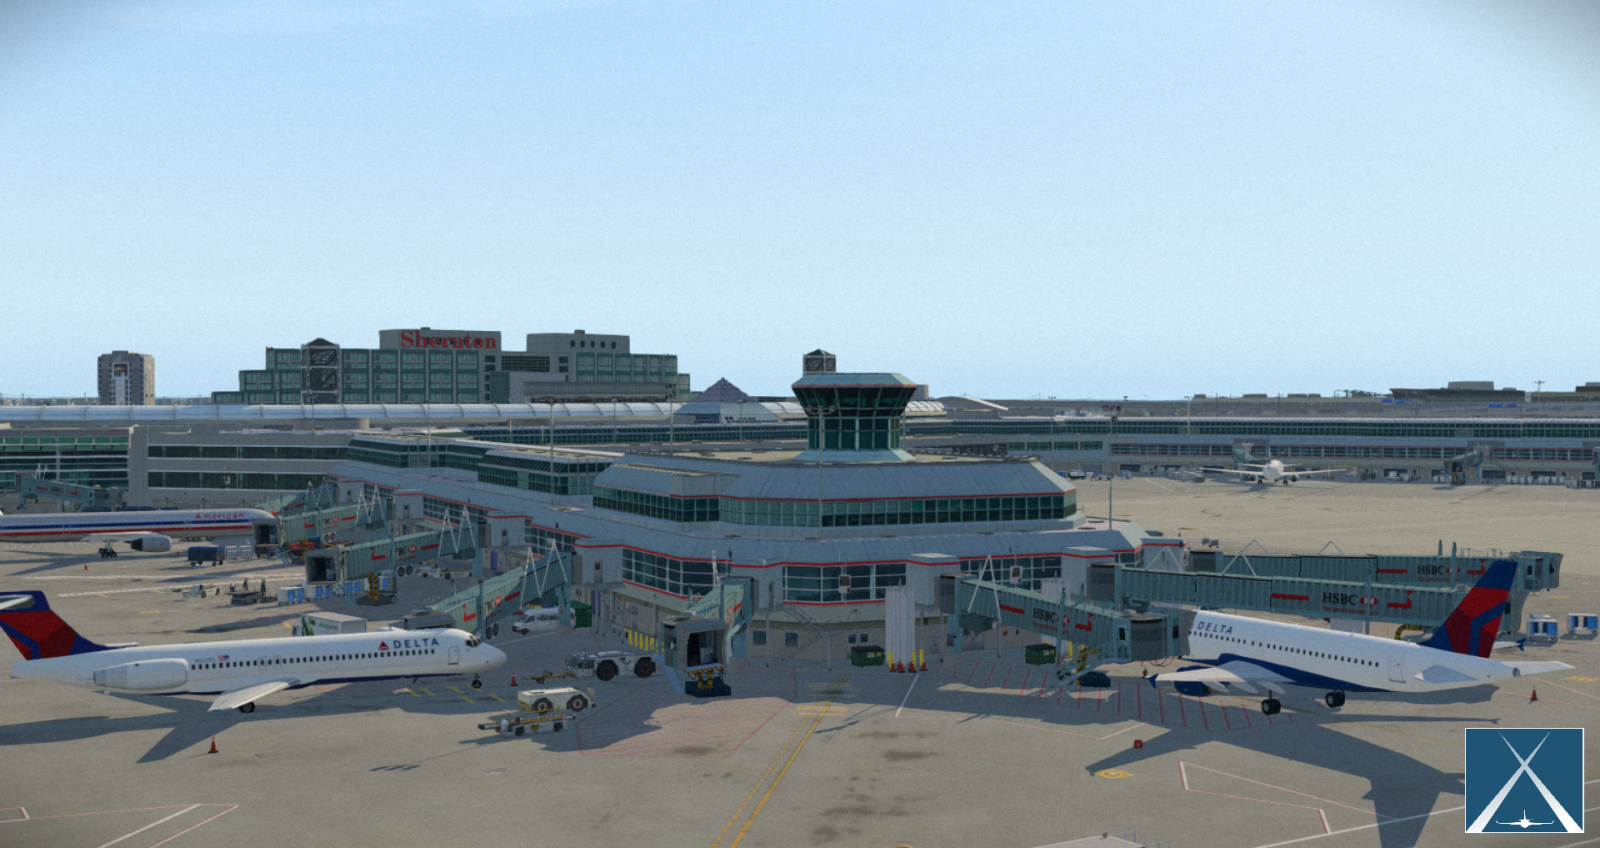 Preview Toronto Pearson International Airport - CYYZ - News from